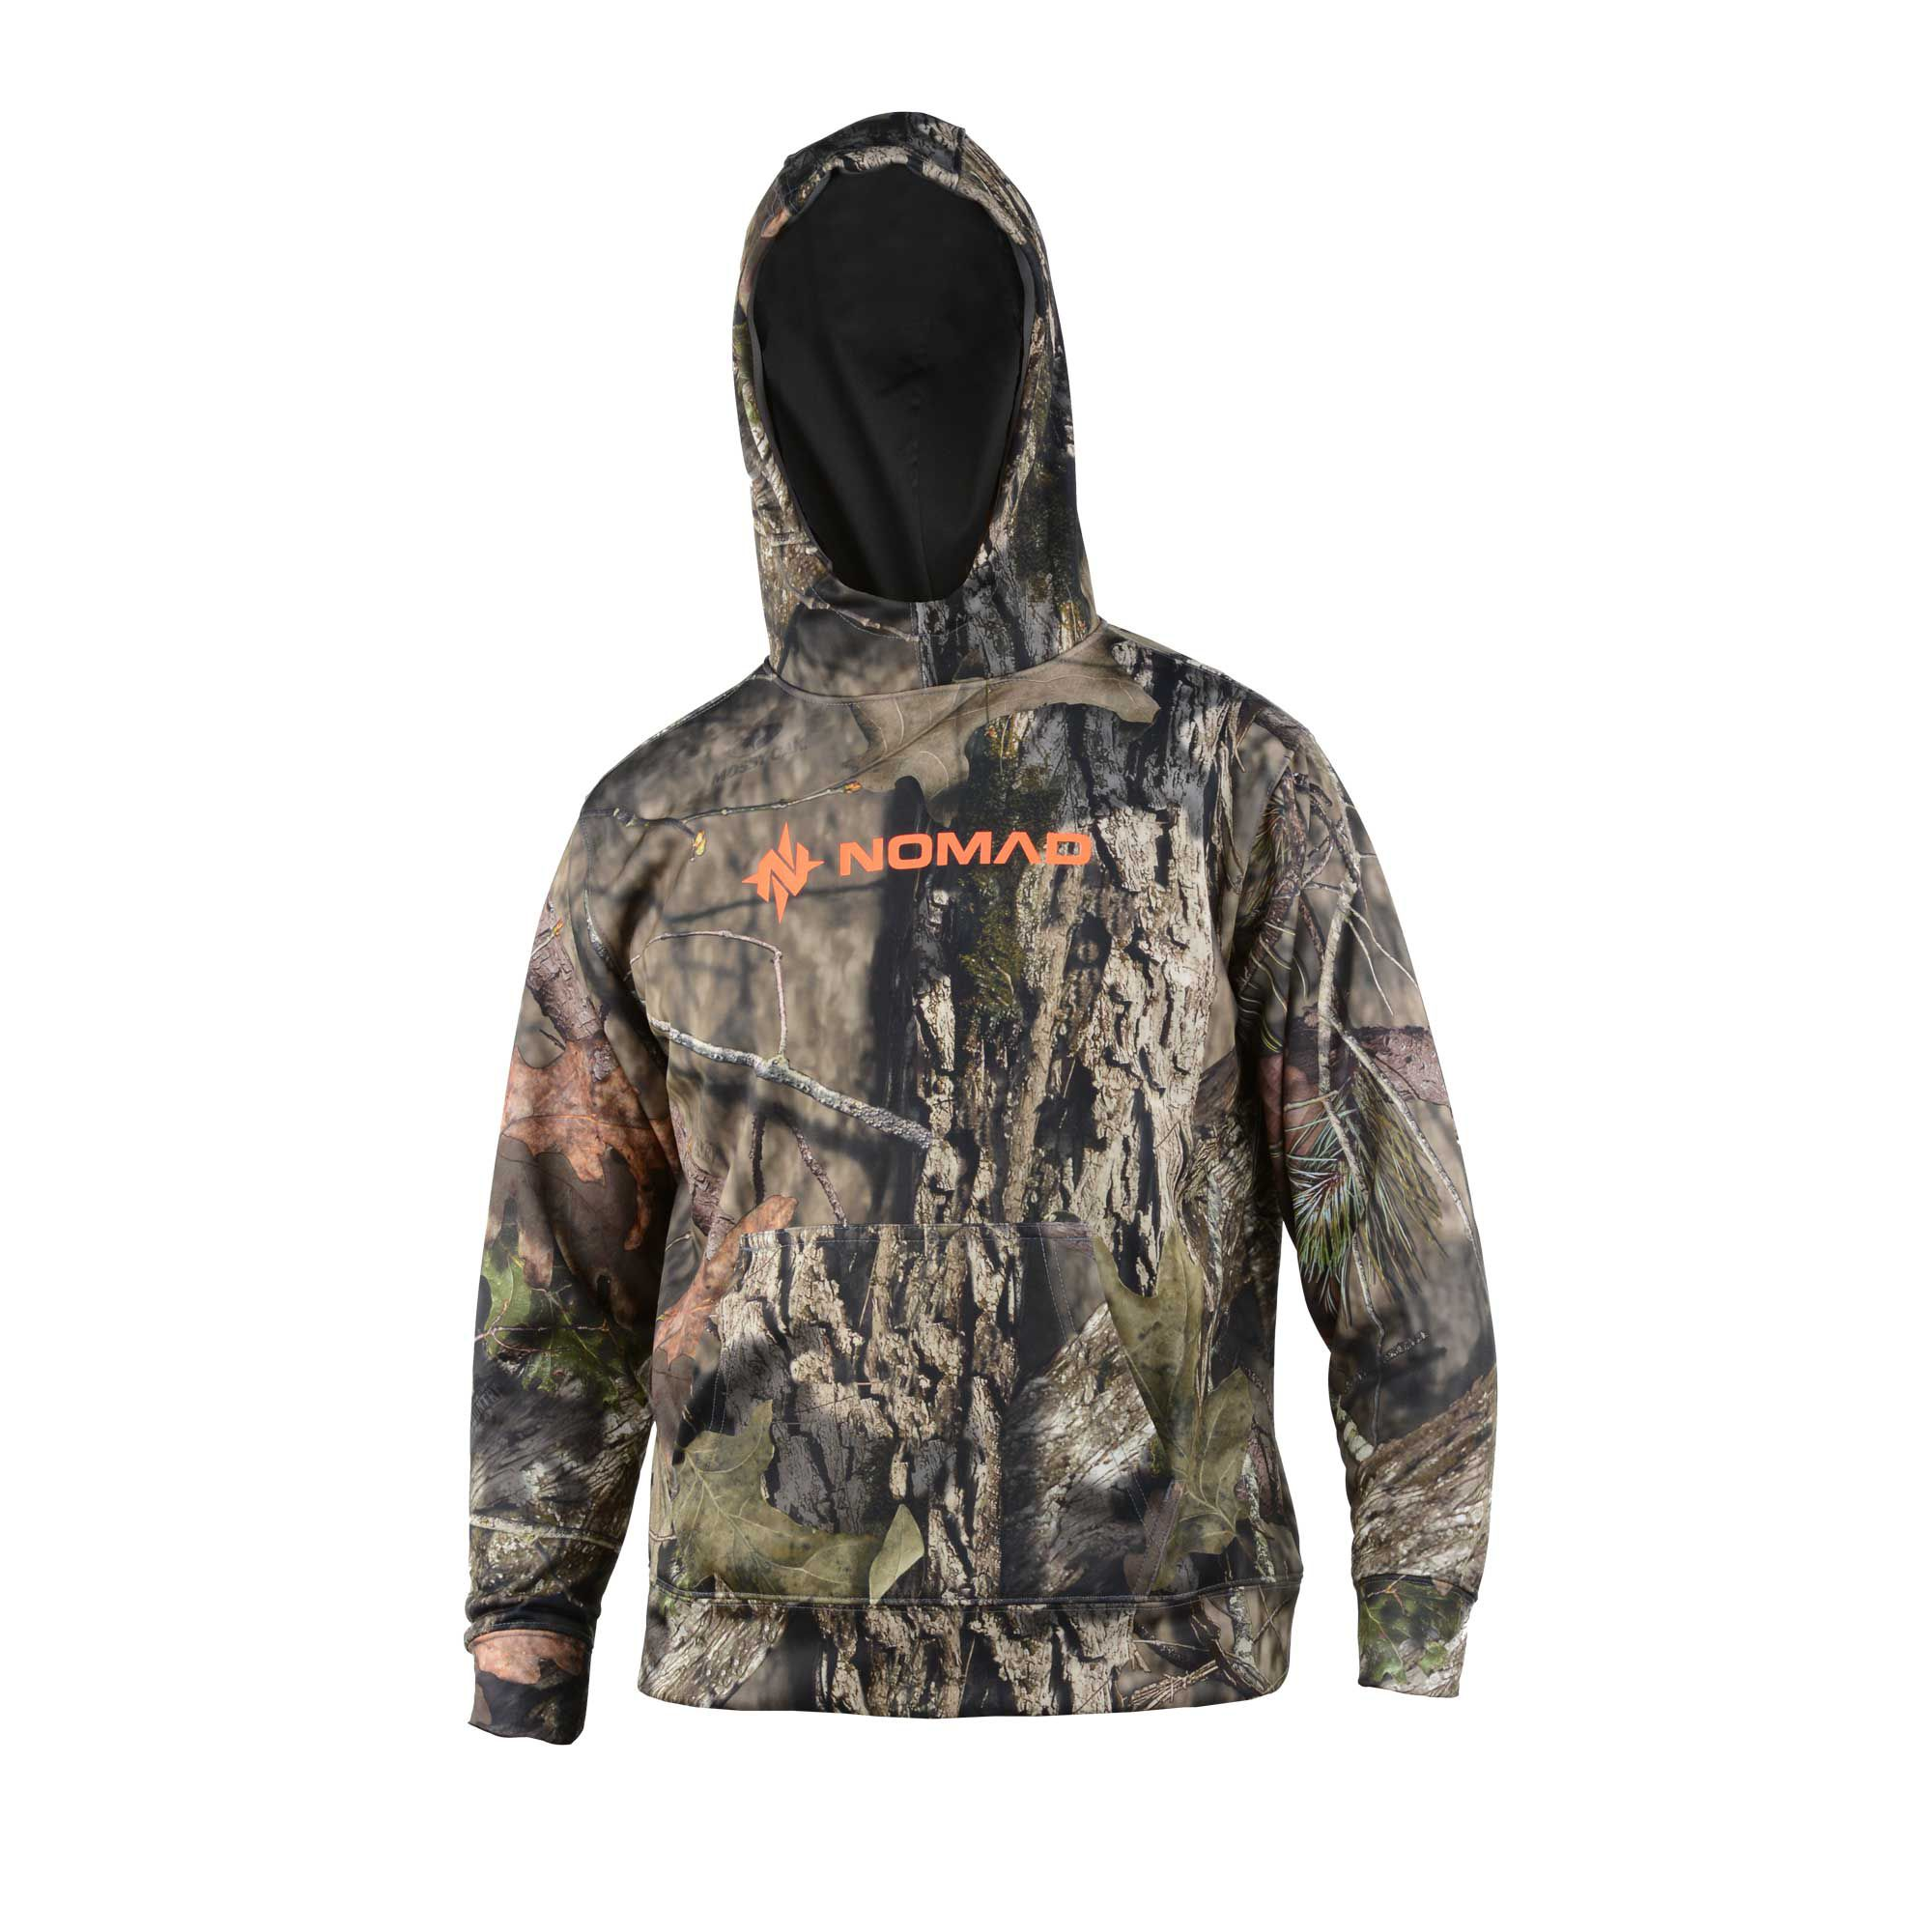 Nomad Youth Southbounder Hunting Hoodie, Kids Unisex, Size: YL, Mossy Oak Break-UpCountry thumbnail